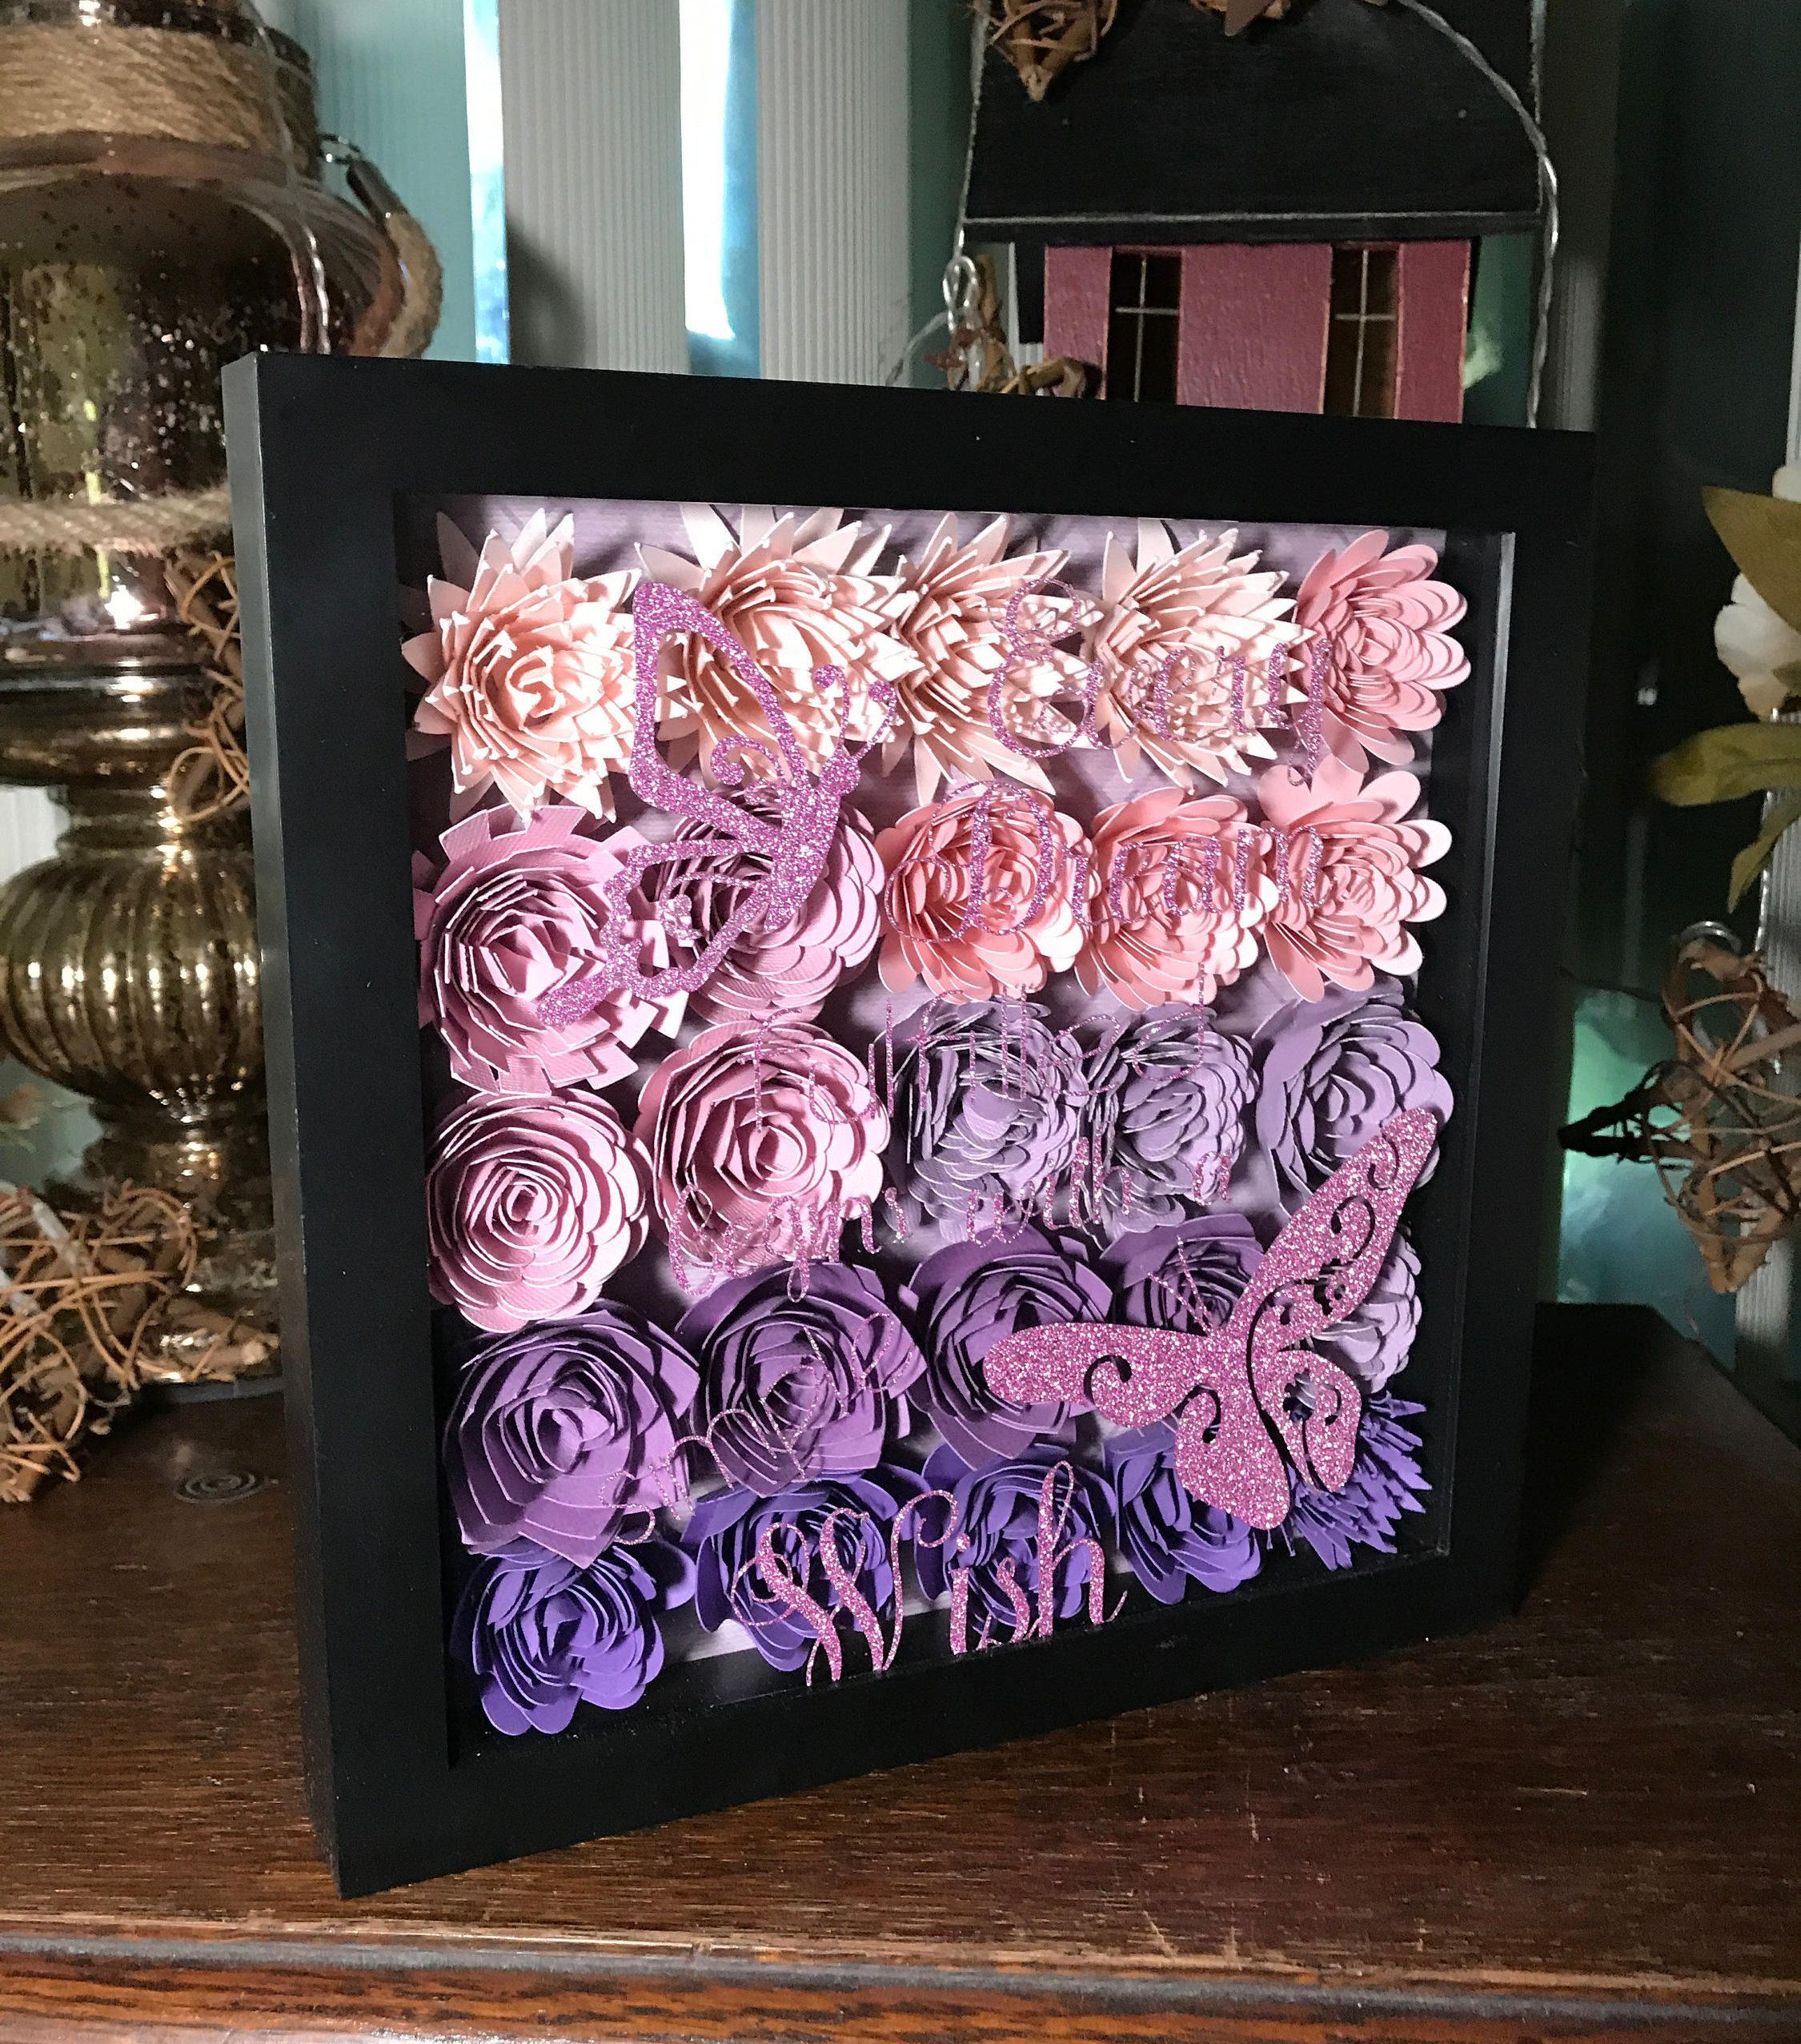 Every dream fulfilled begins with a simple wish shadow box